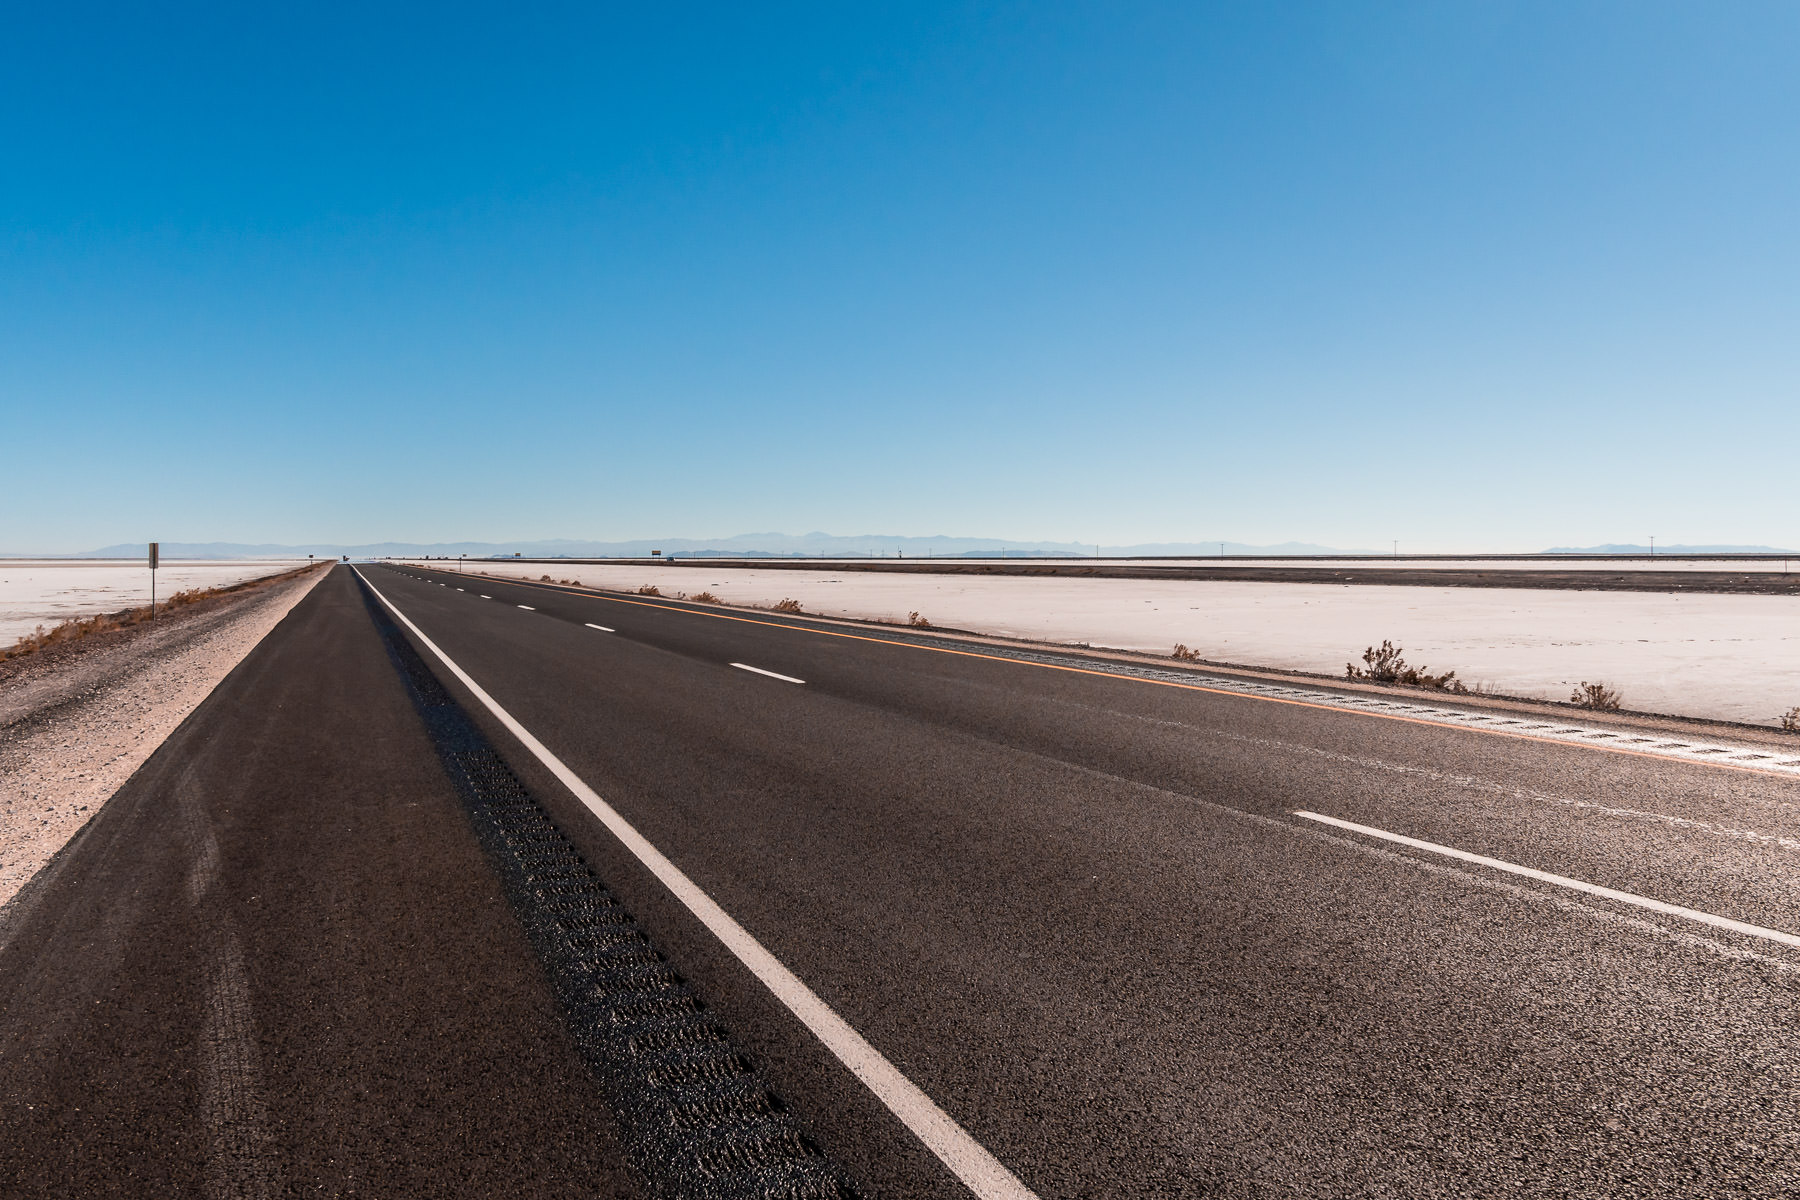 Interstate 80 traverses the arid expanse of the Bonneville Salt Flats, Utah.